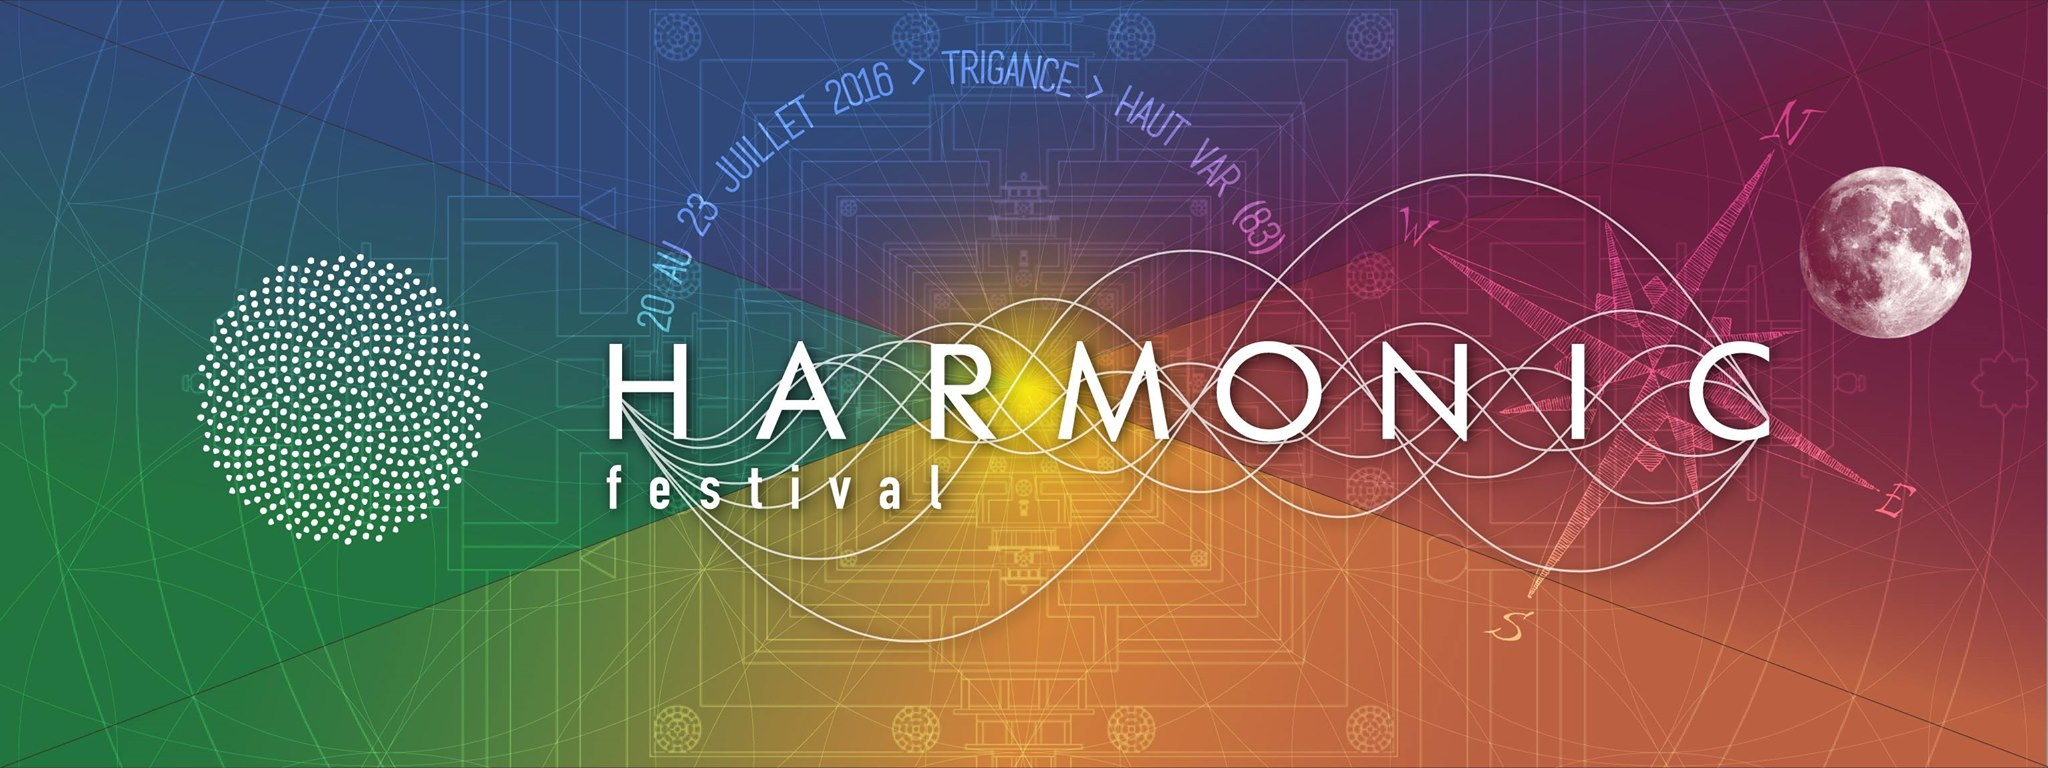 interview with Harmonic festival team